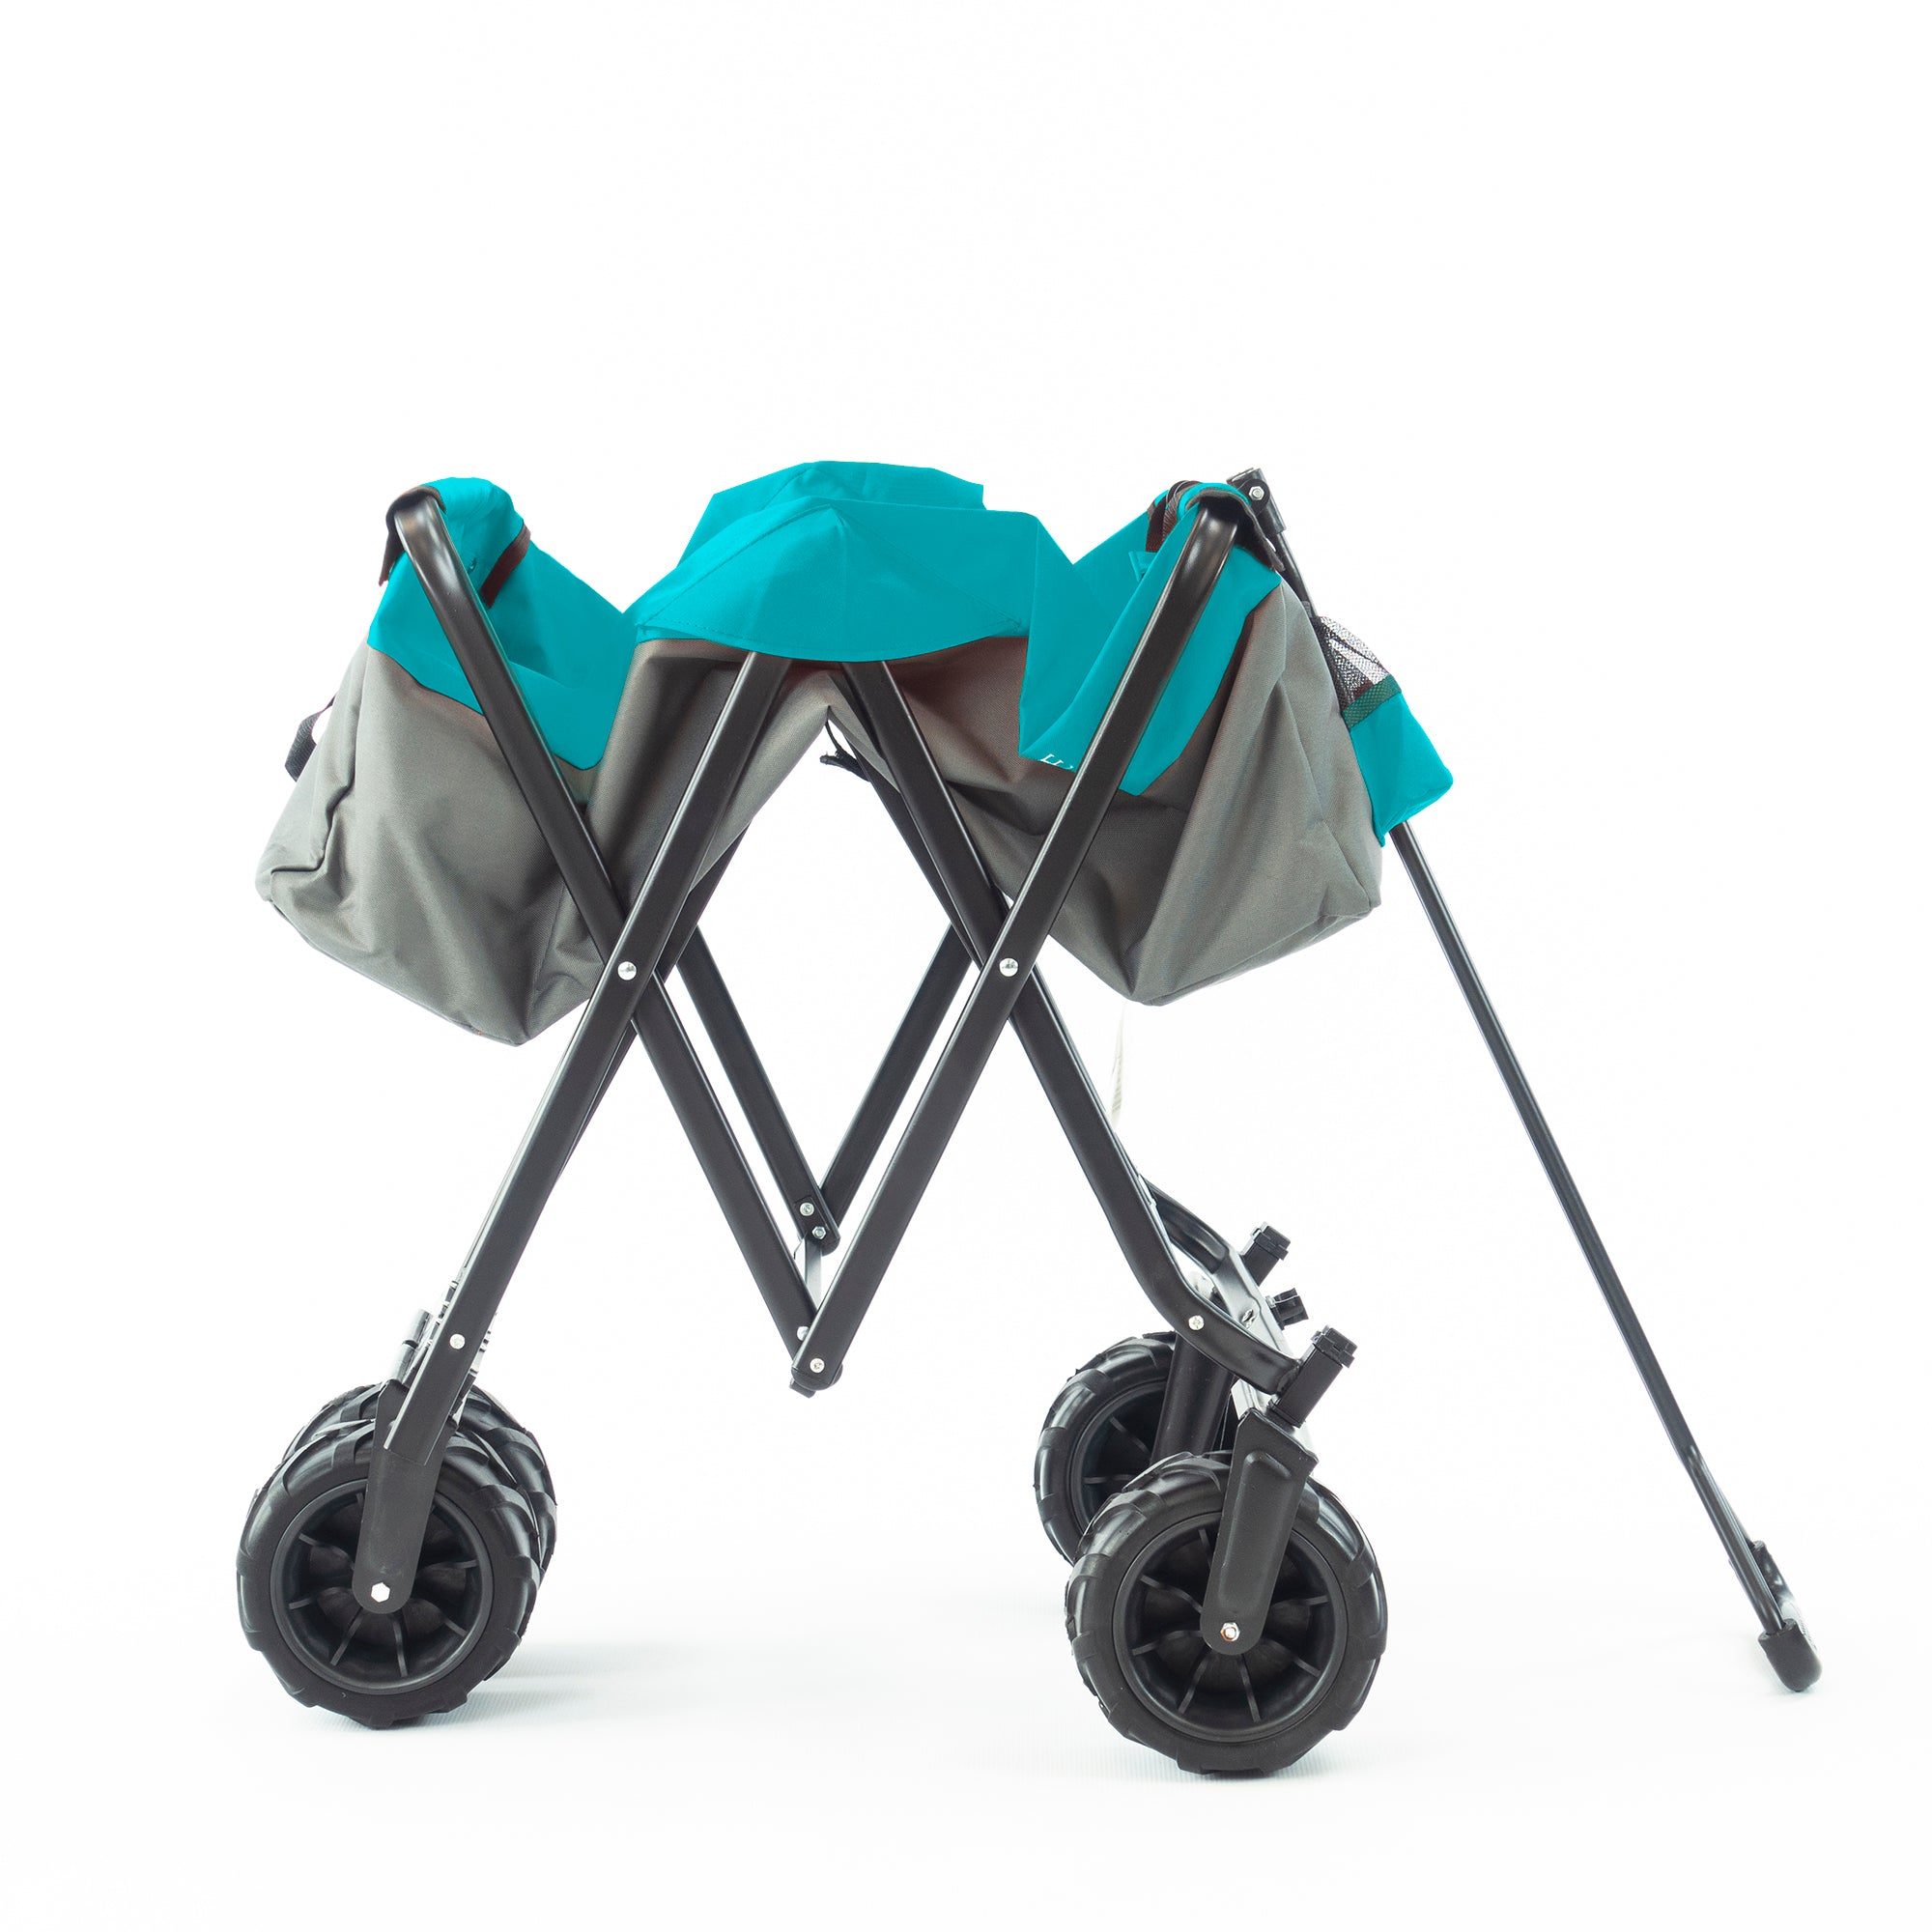 All-Terrain Folding Wagon | Gray Teal